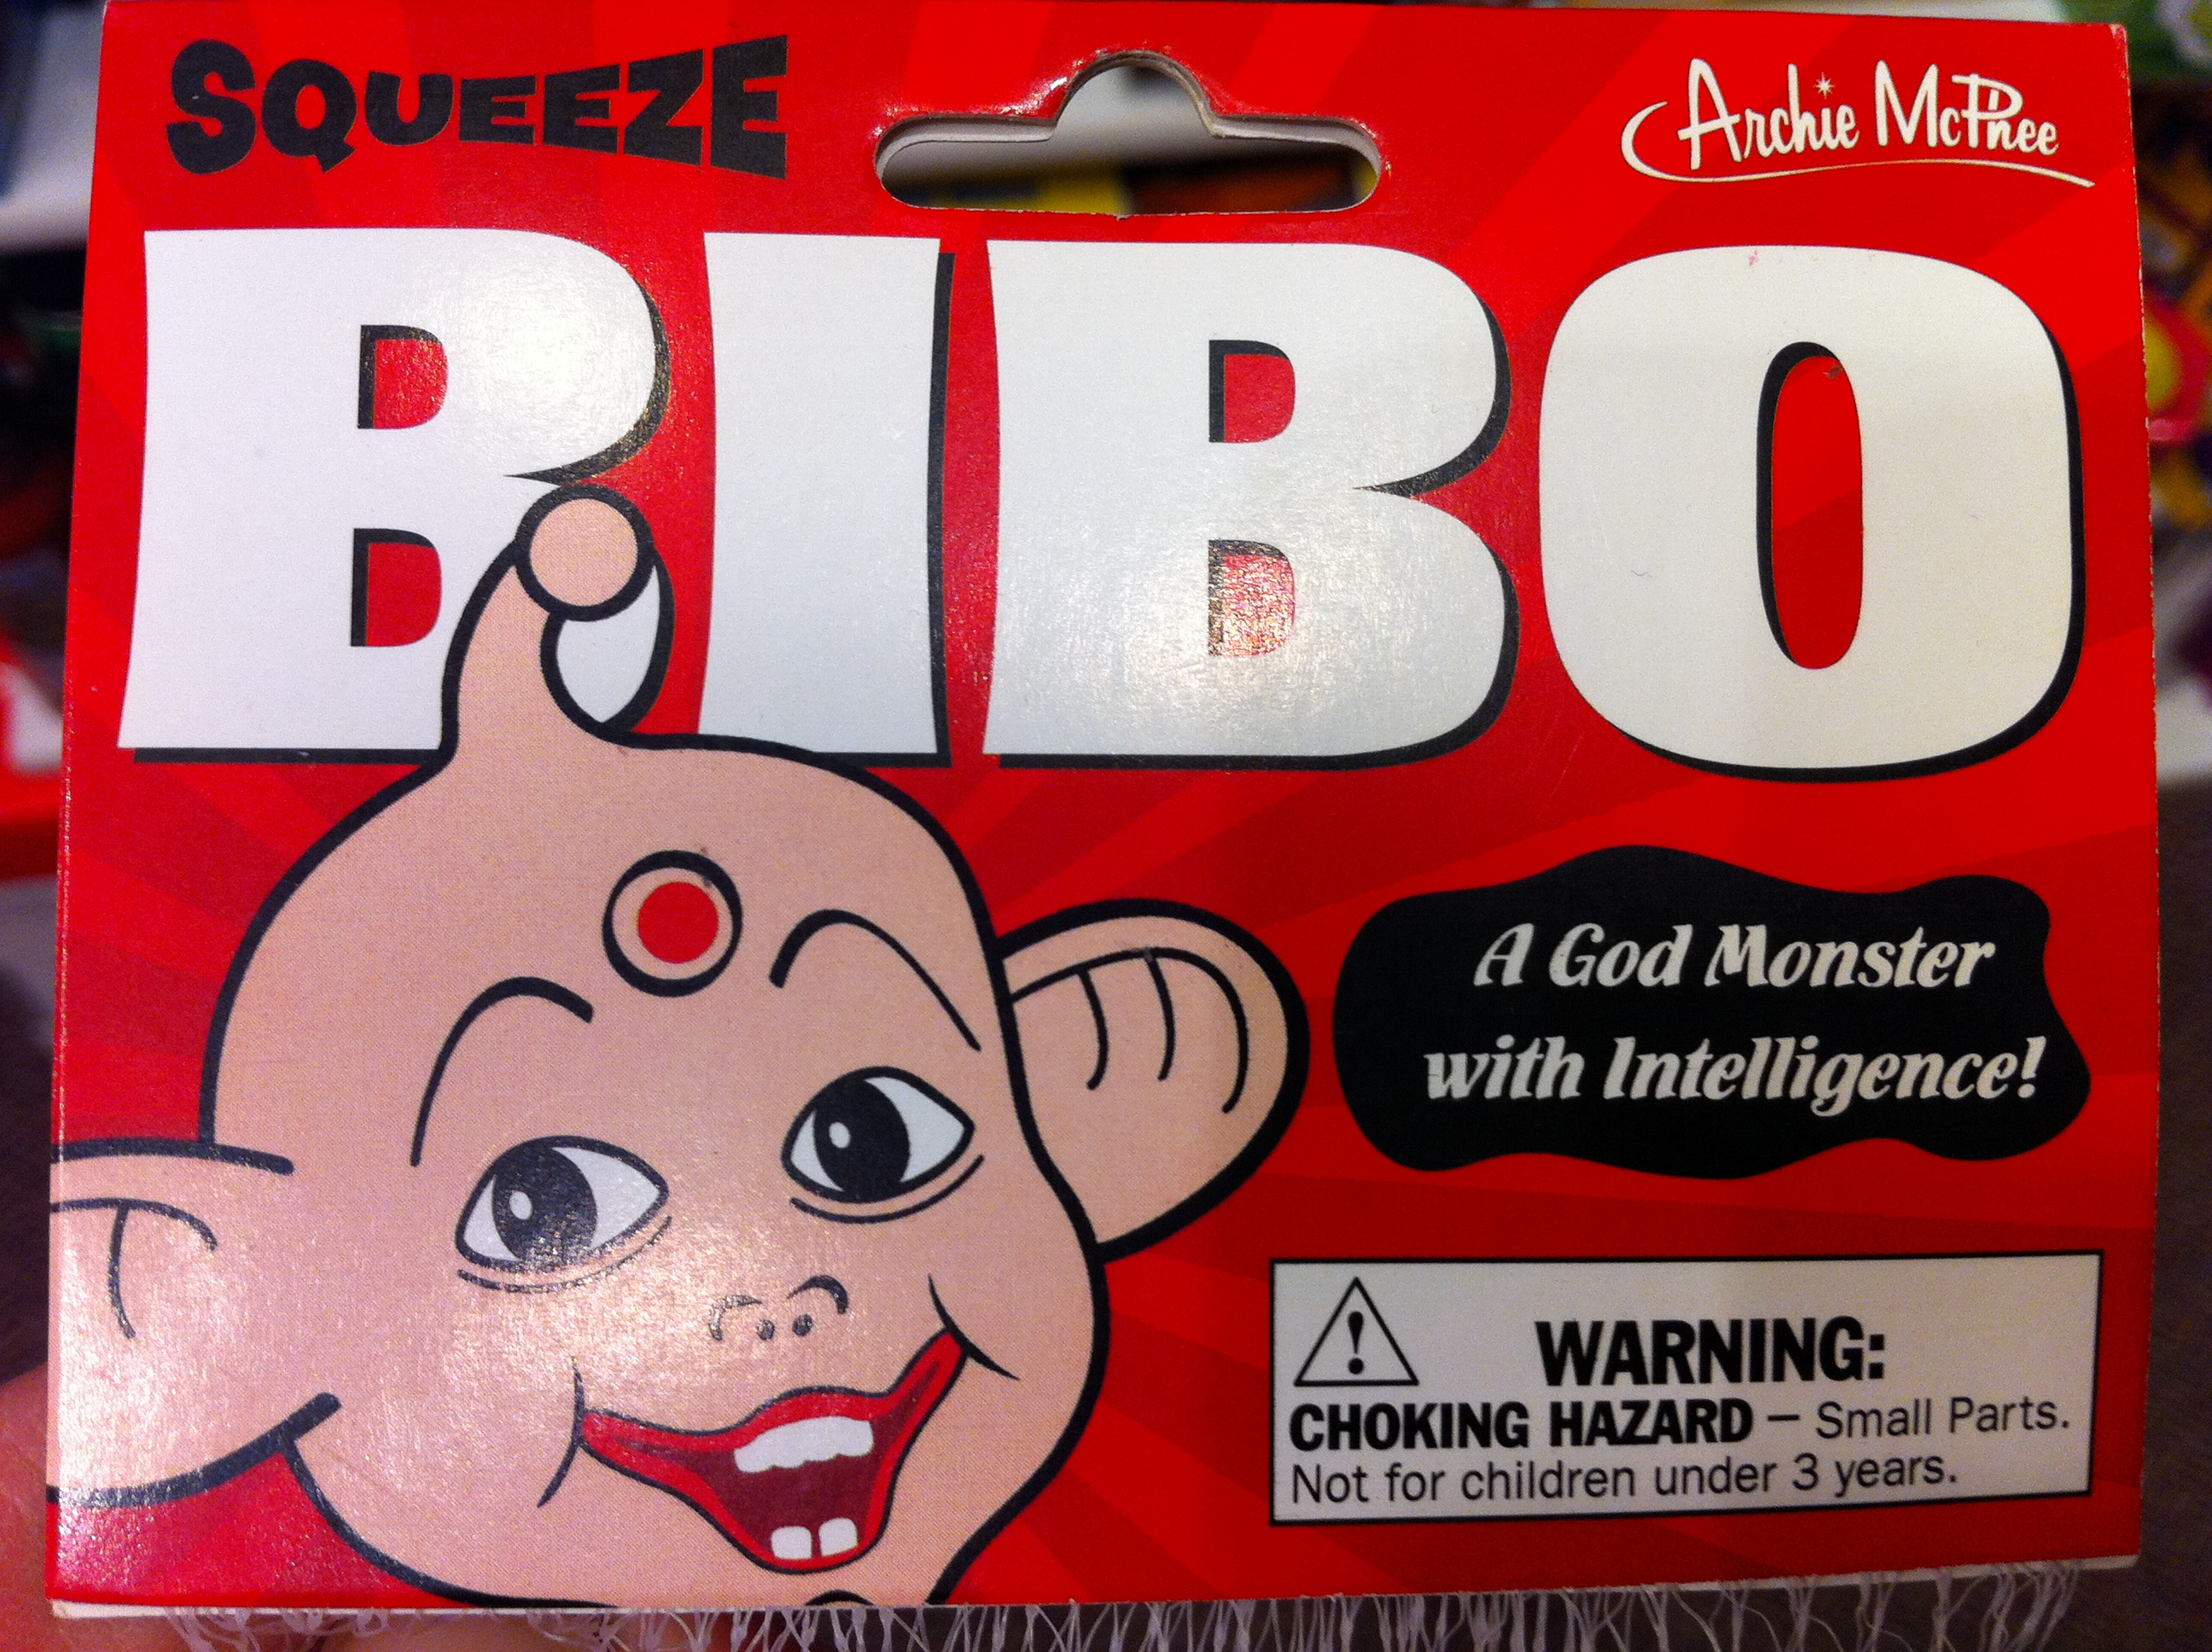 BIBO : A God Monster with Intelligence